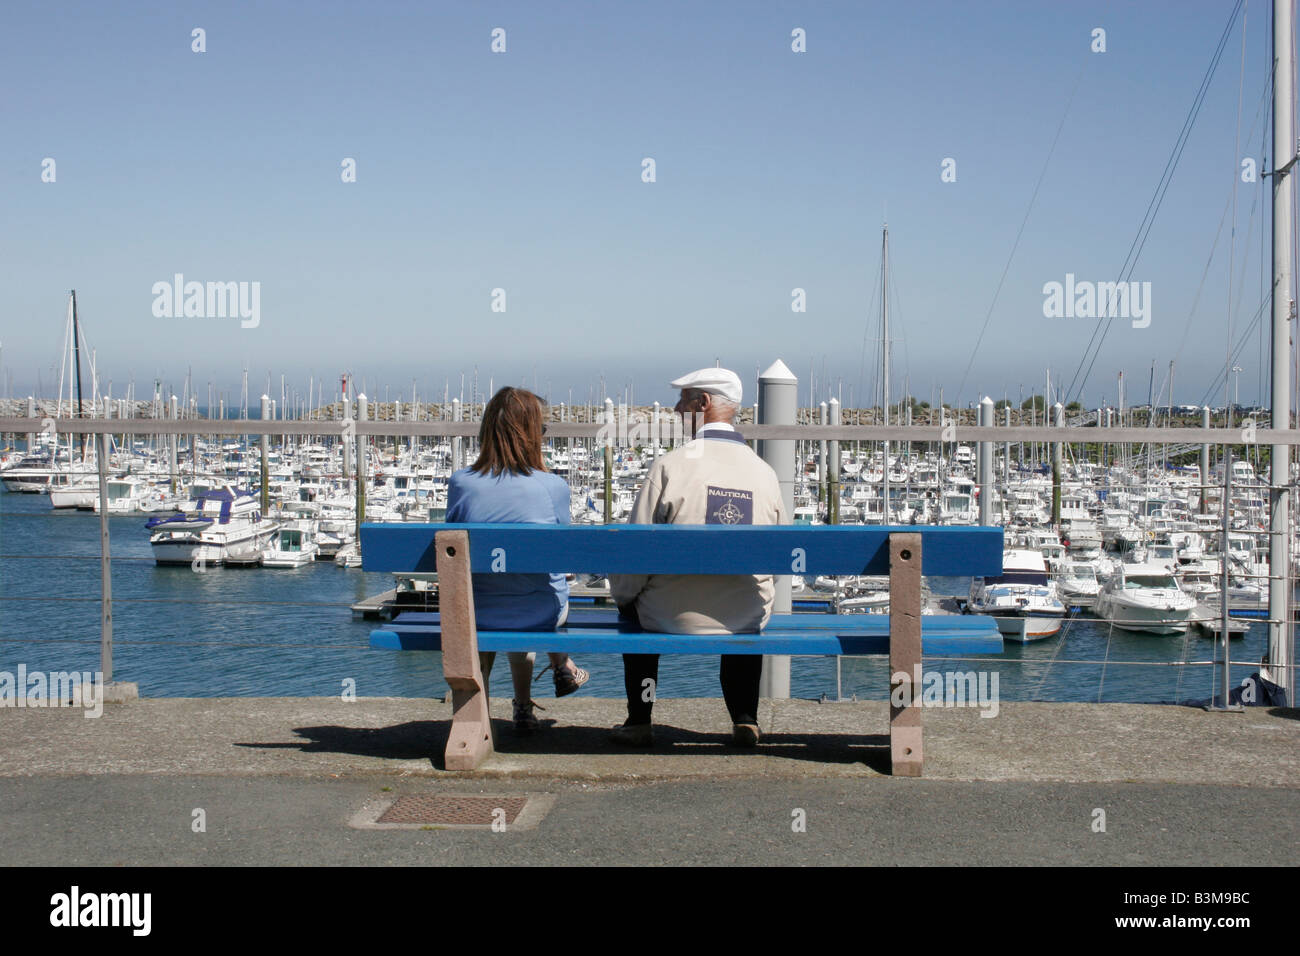 Nautical scene with elderly man and younger woman sitting together on bench seat overlooking harbour with boats - Stock Image